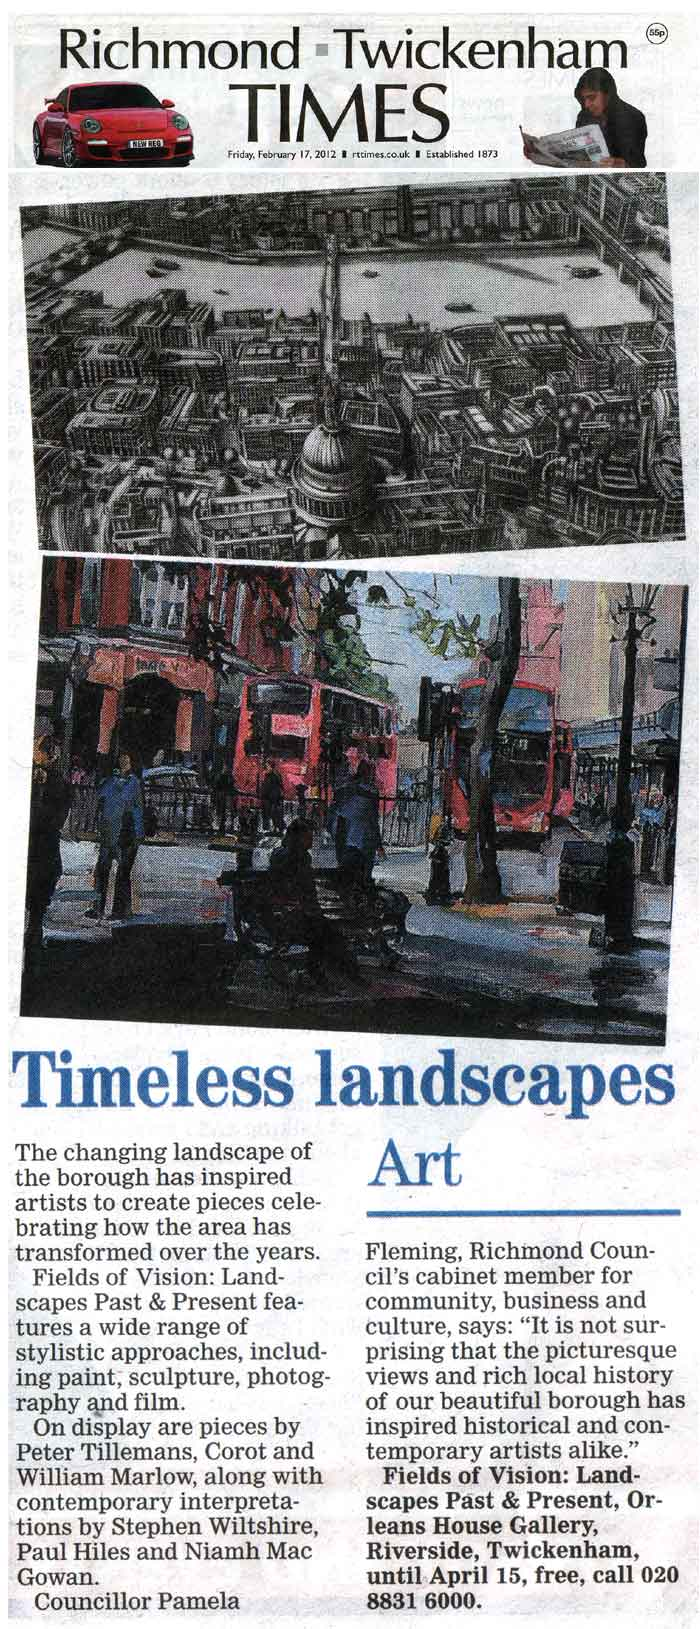 """Fields of Vision"" Landscapes Past & Present"" RRTIMES Recent Article"